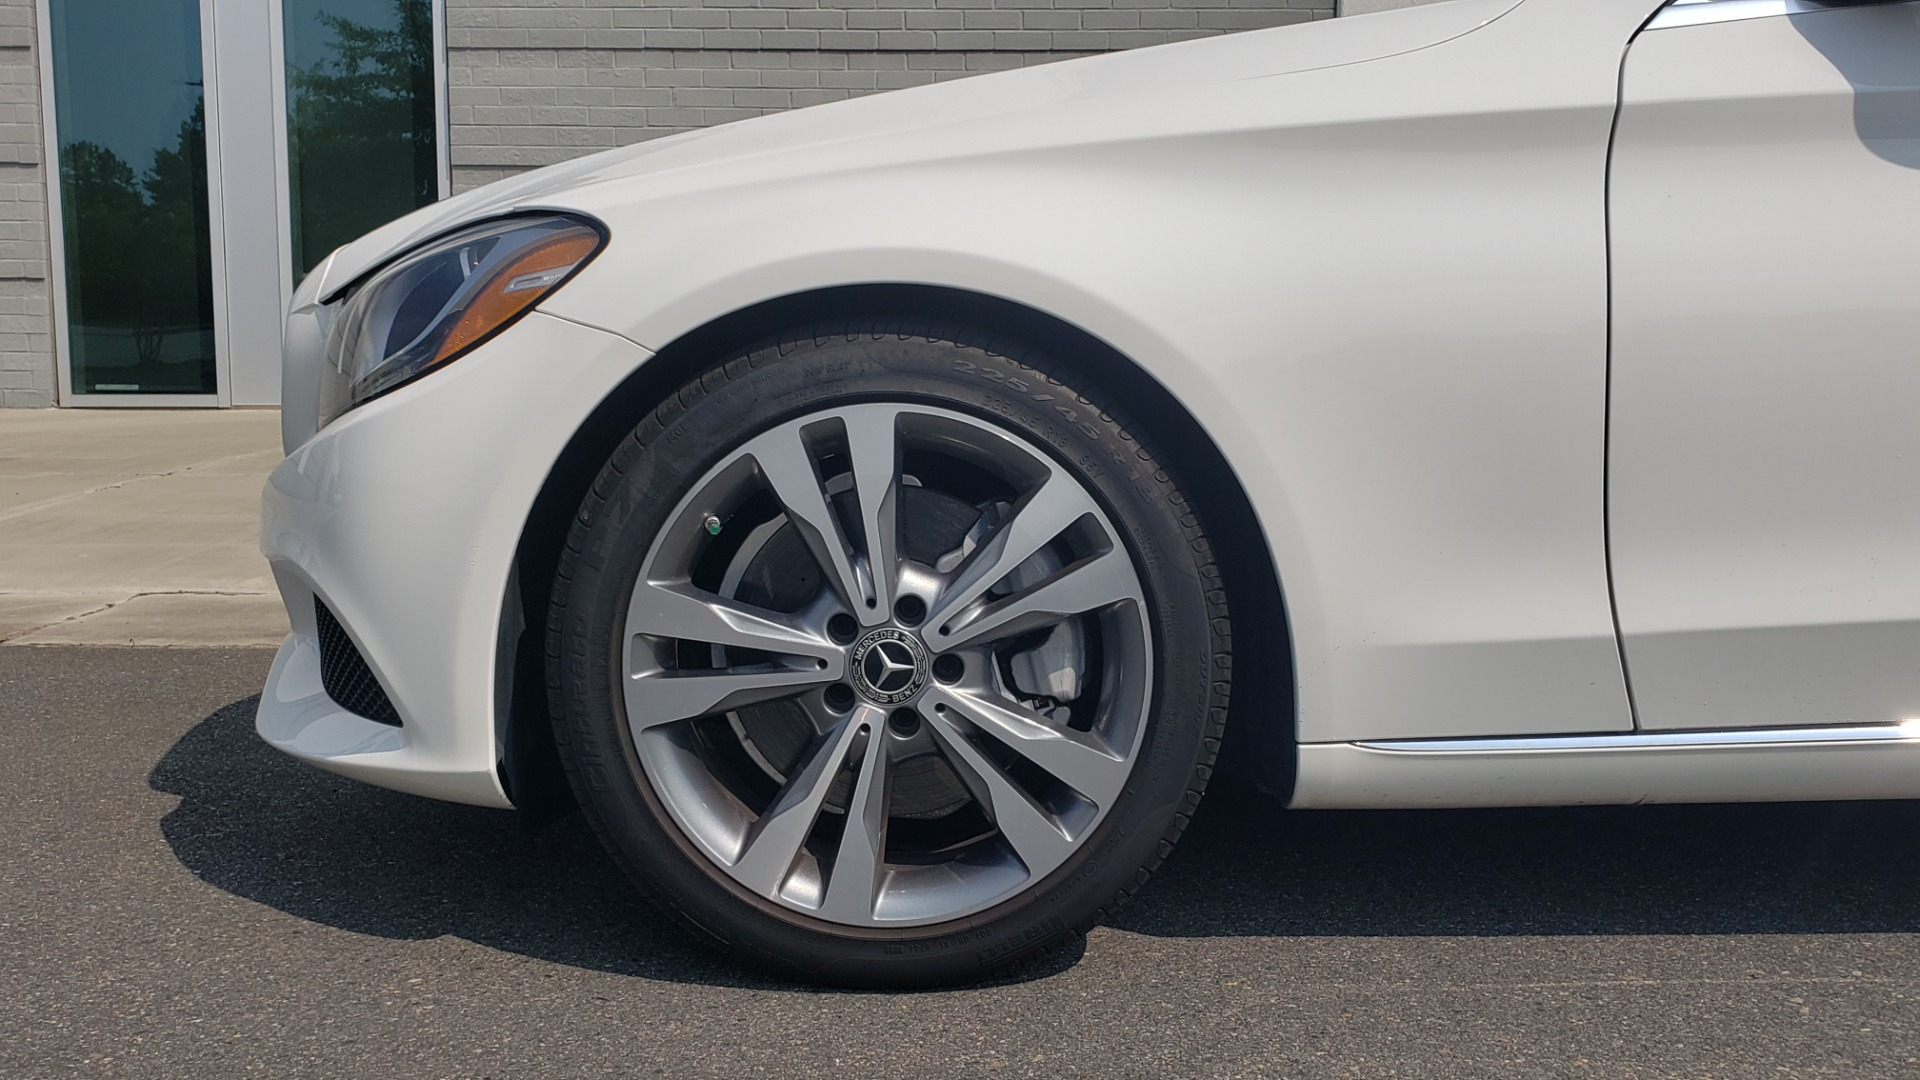 Used 2018 Mercedes-Benz C-CLASS C 300 PREMIUM / KEYLESS-GO / APPLE / PANO-ROOF / REARVIEW for sale $28,295 at Formula Imports in Charlotte NC 28227 72